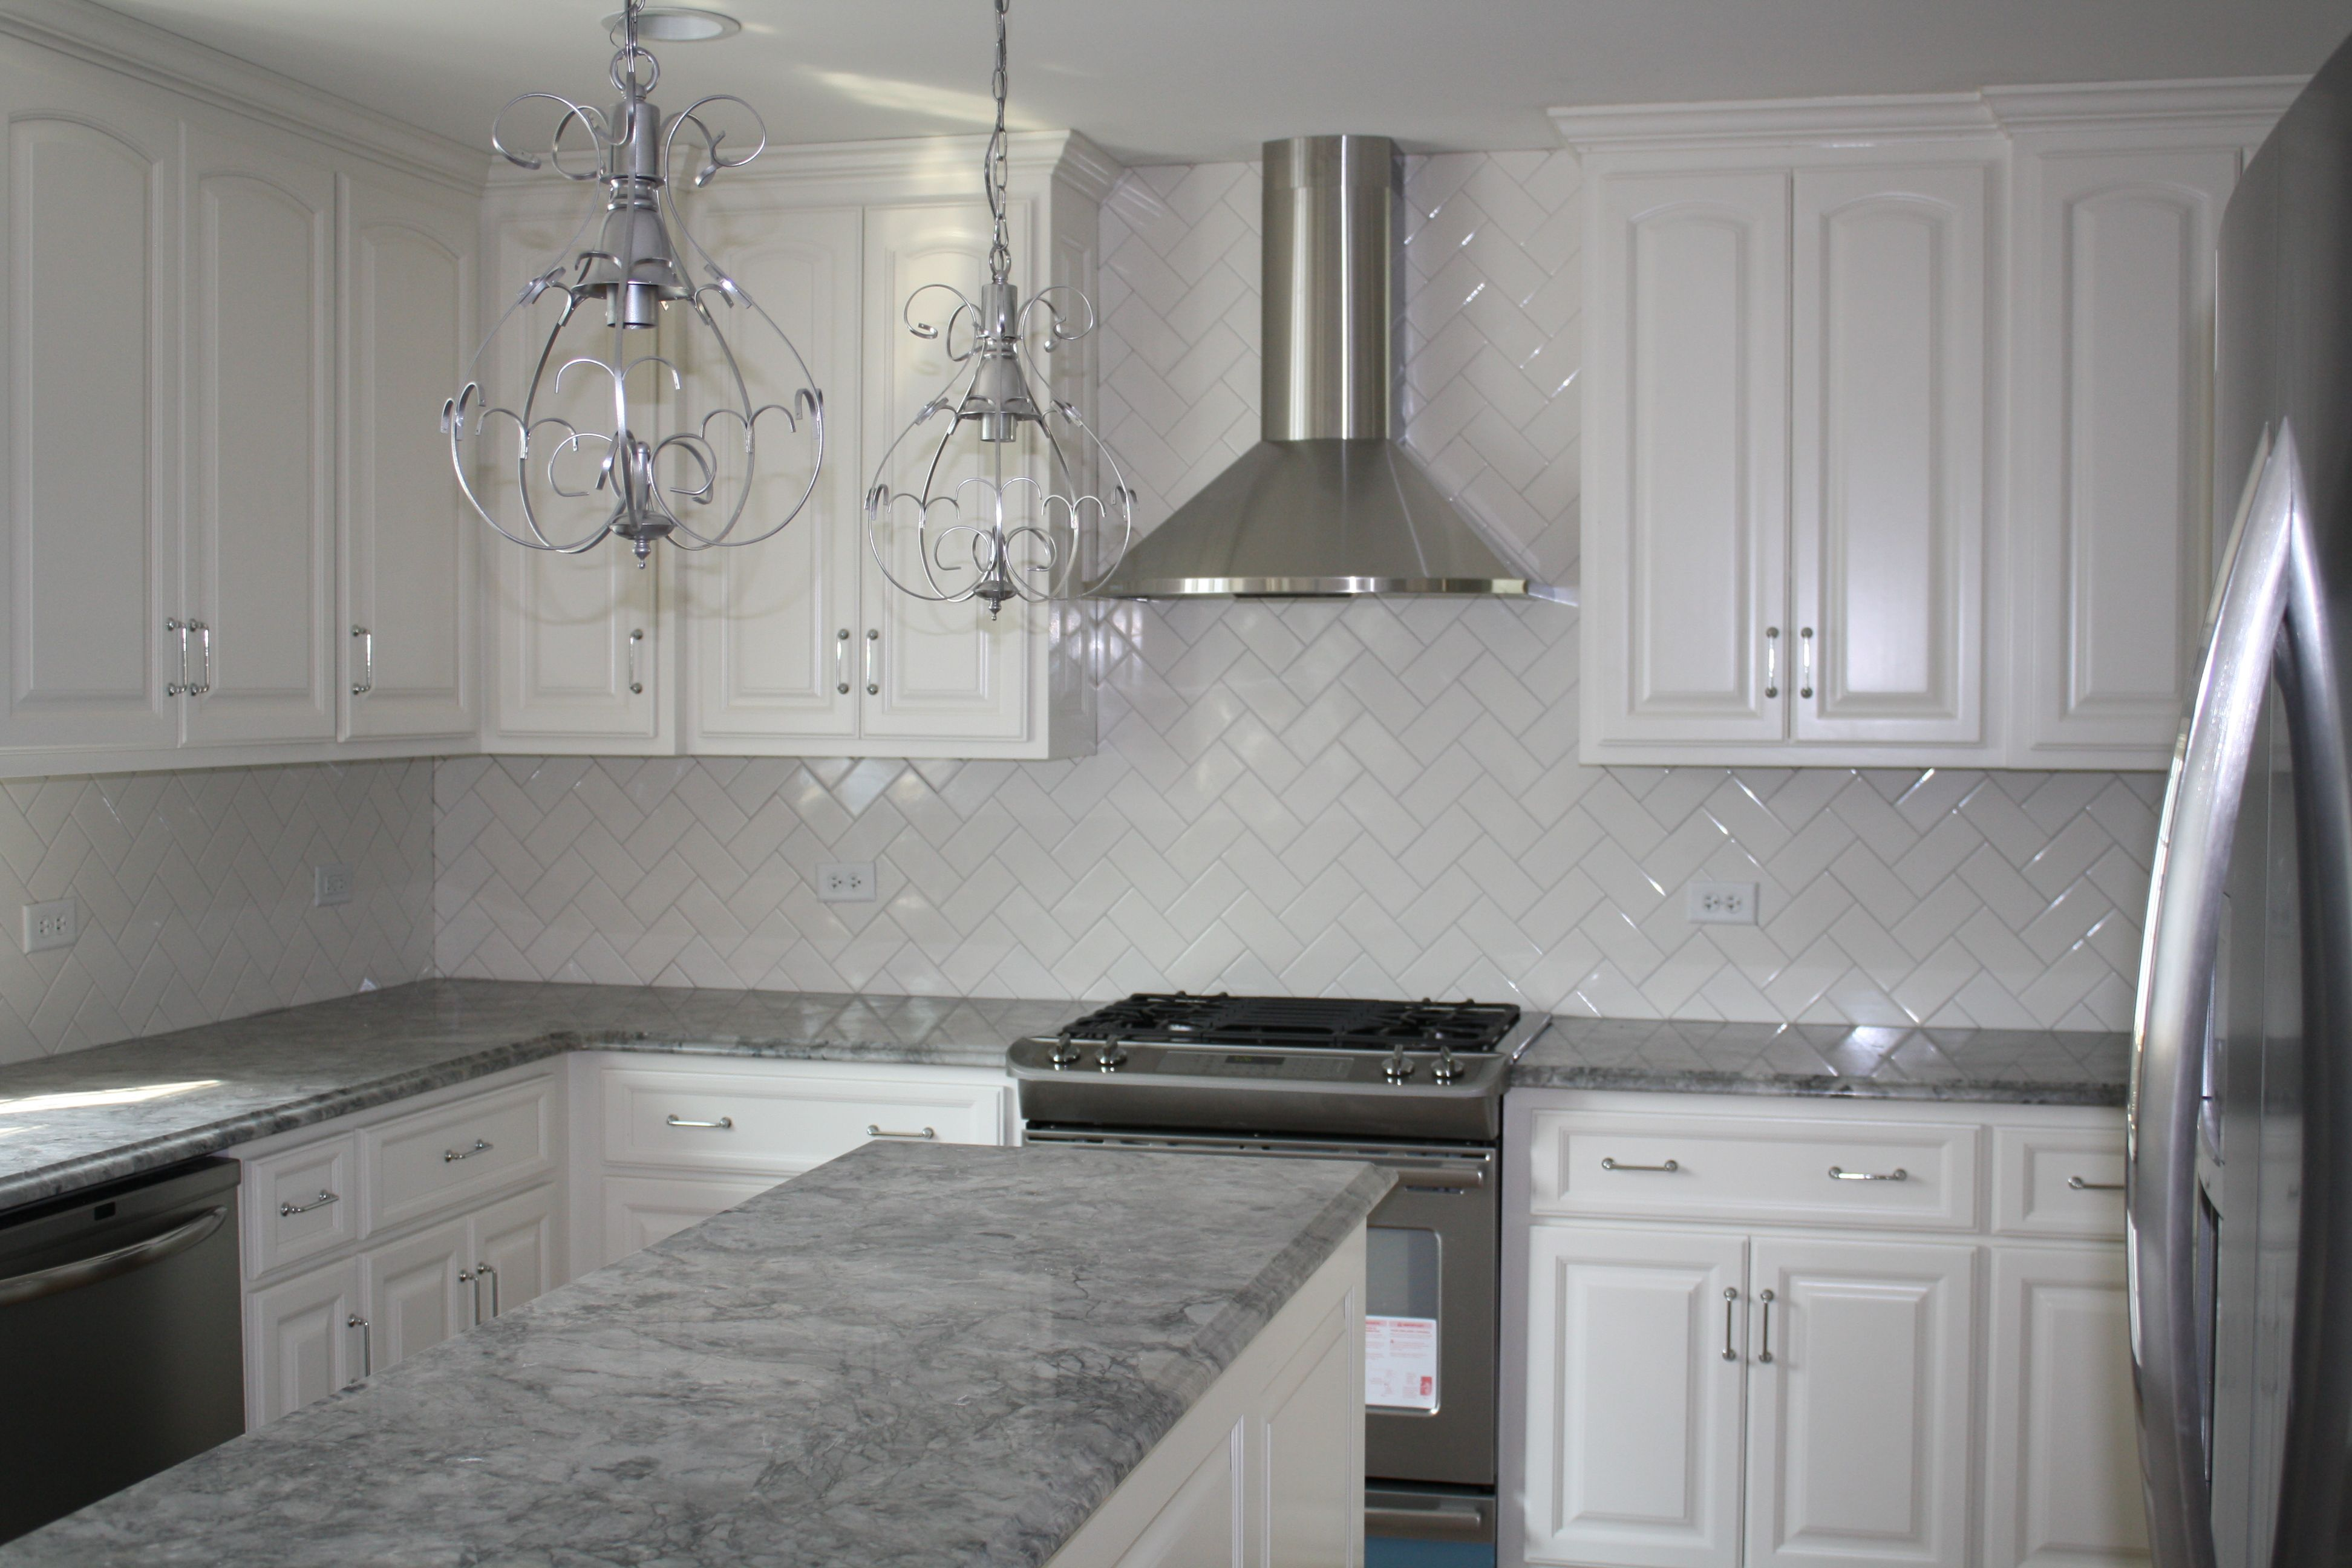 Grey Granite Kitchen Countertops beautiful white kitchen cabinets with gray granite countertops and